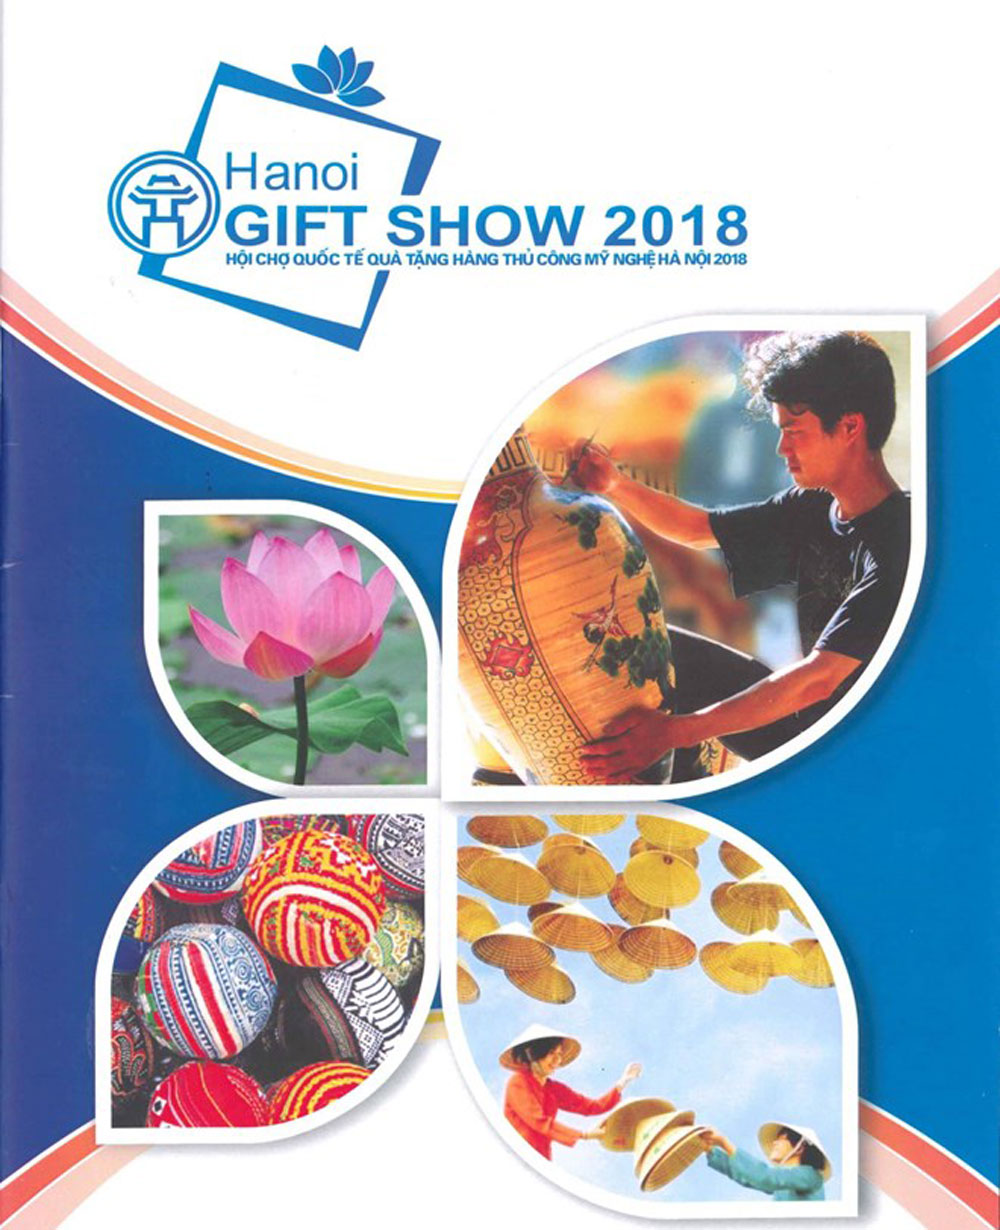 Hanoi Gift Show, next week, domestic and foreign designers, local handicraft design contest, export markets, traditional craft villages